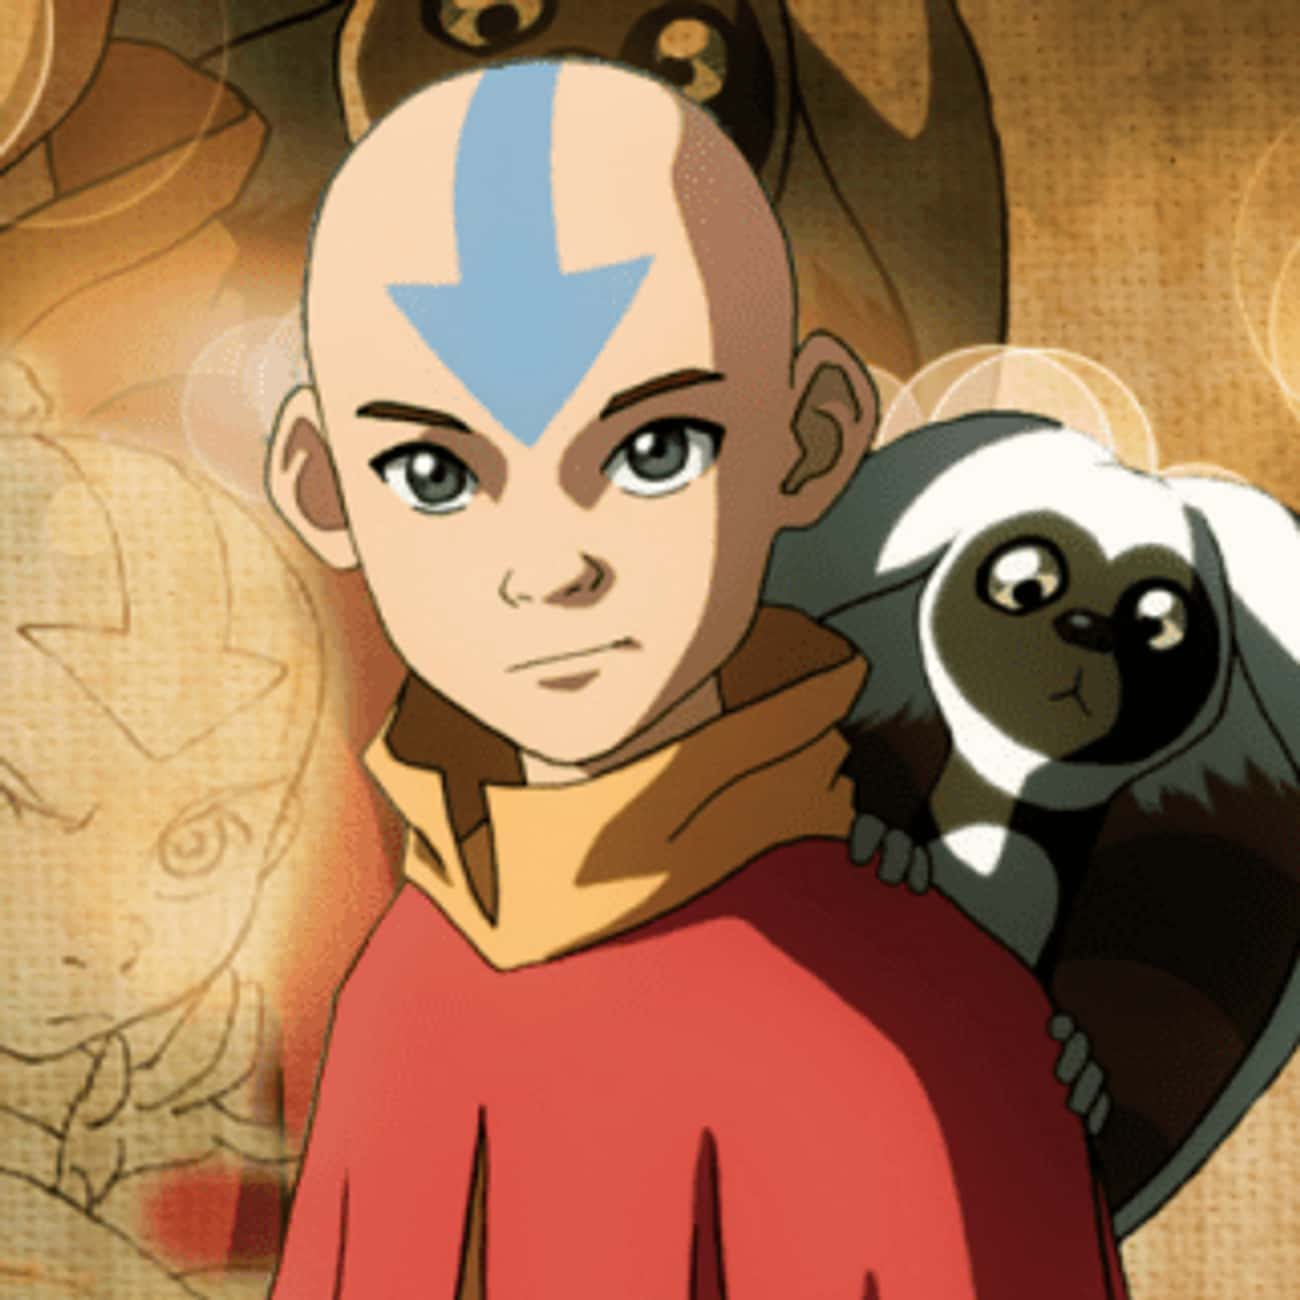 Everyone Deserves A Chance is listed (or ranked) 4 on the list The Best Aang Quotes From Avatar: The Last Airbender